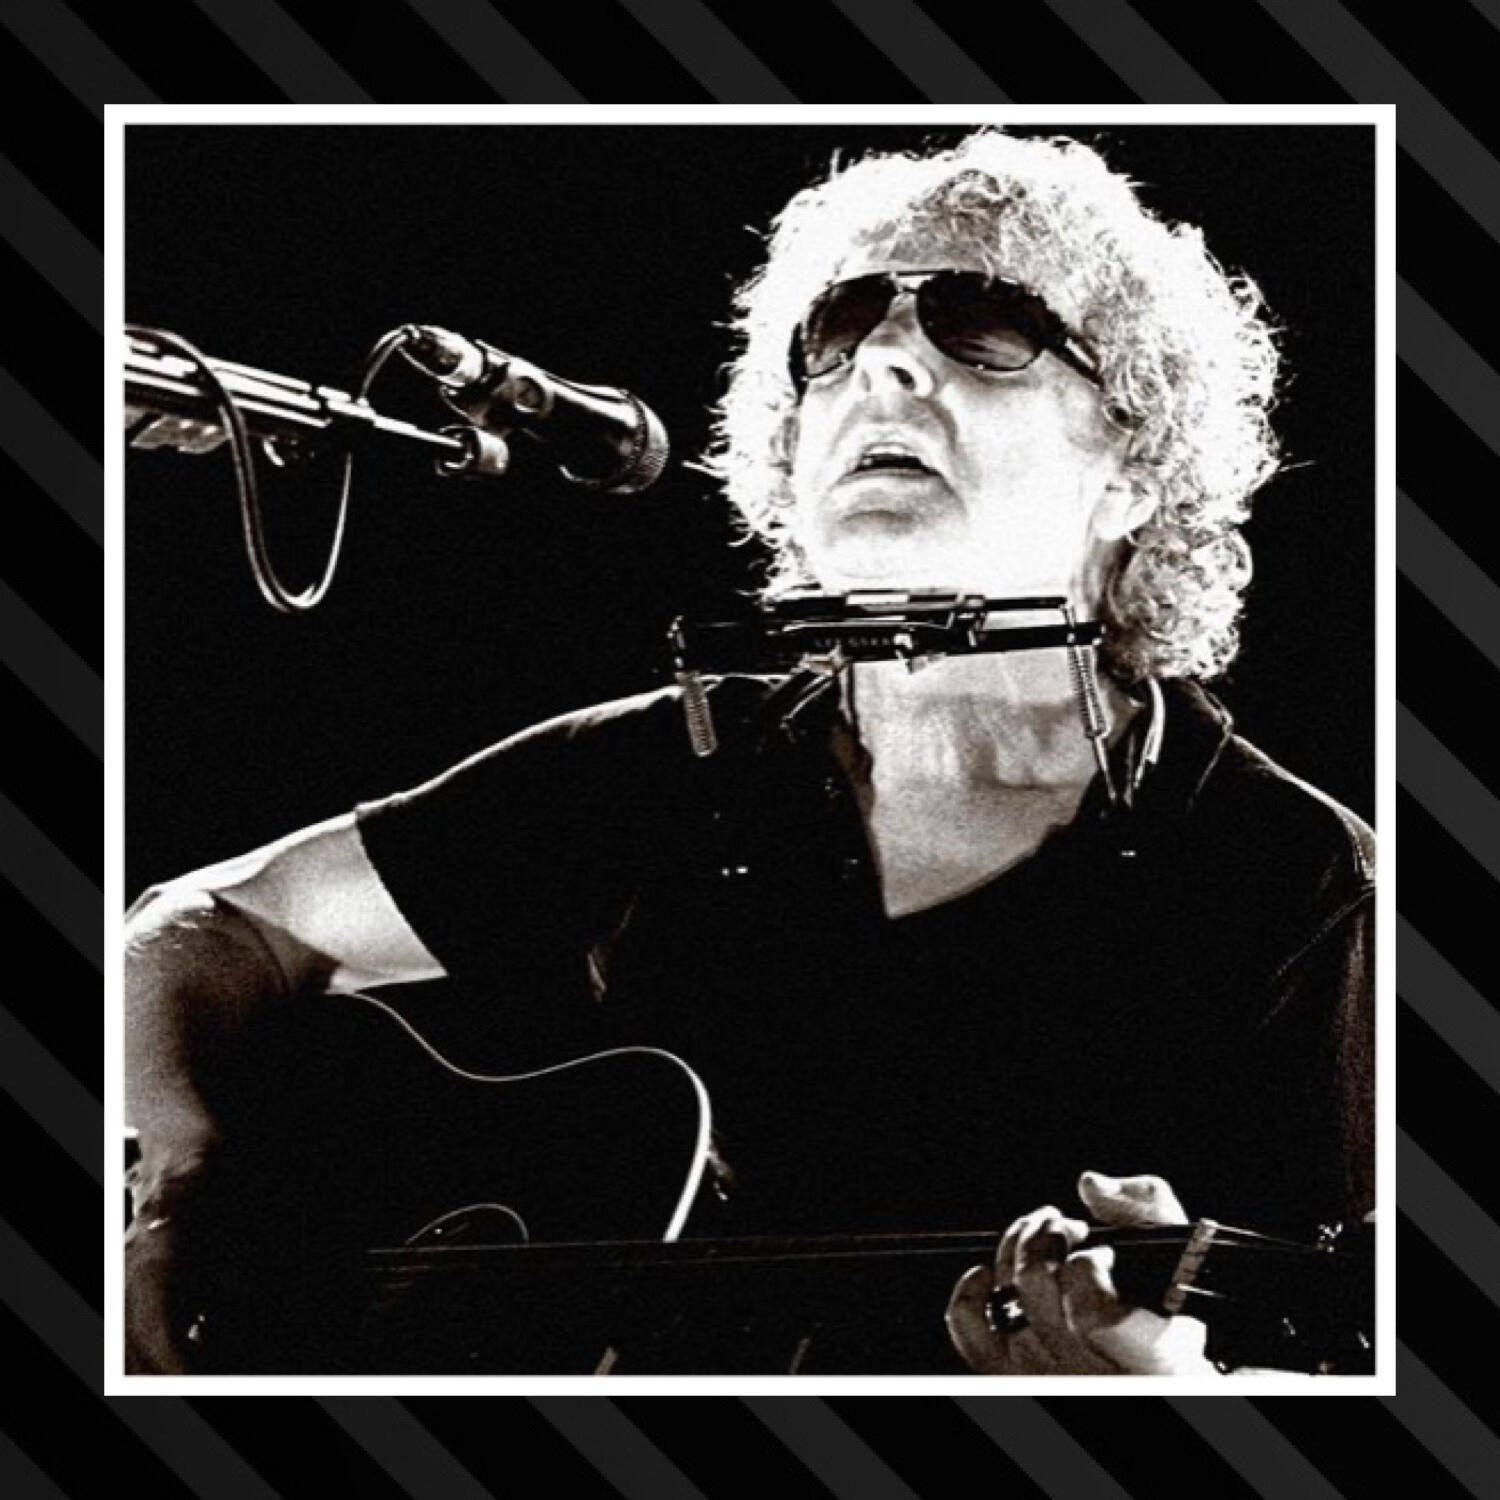 9: The one with Mott The Hoople's Ian Hunter Image